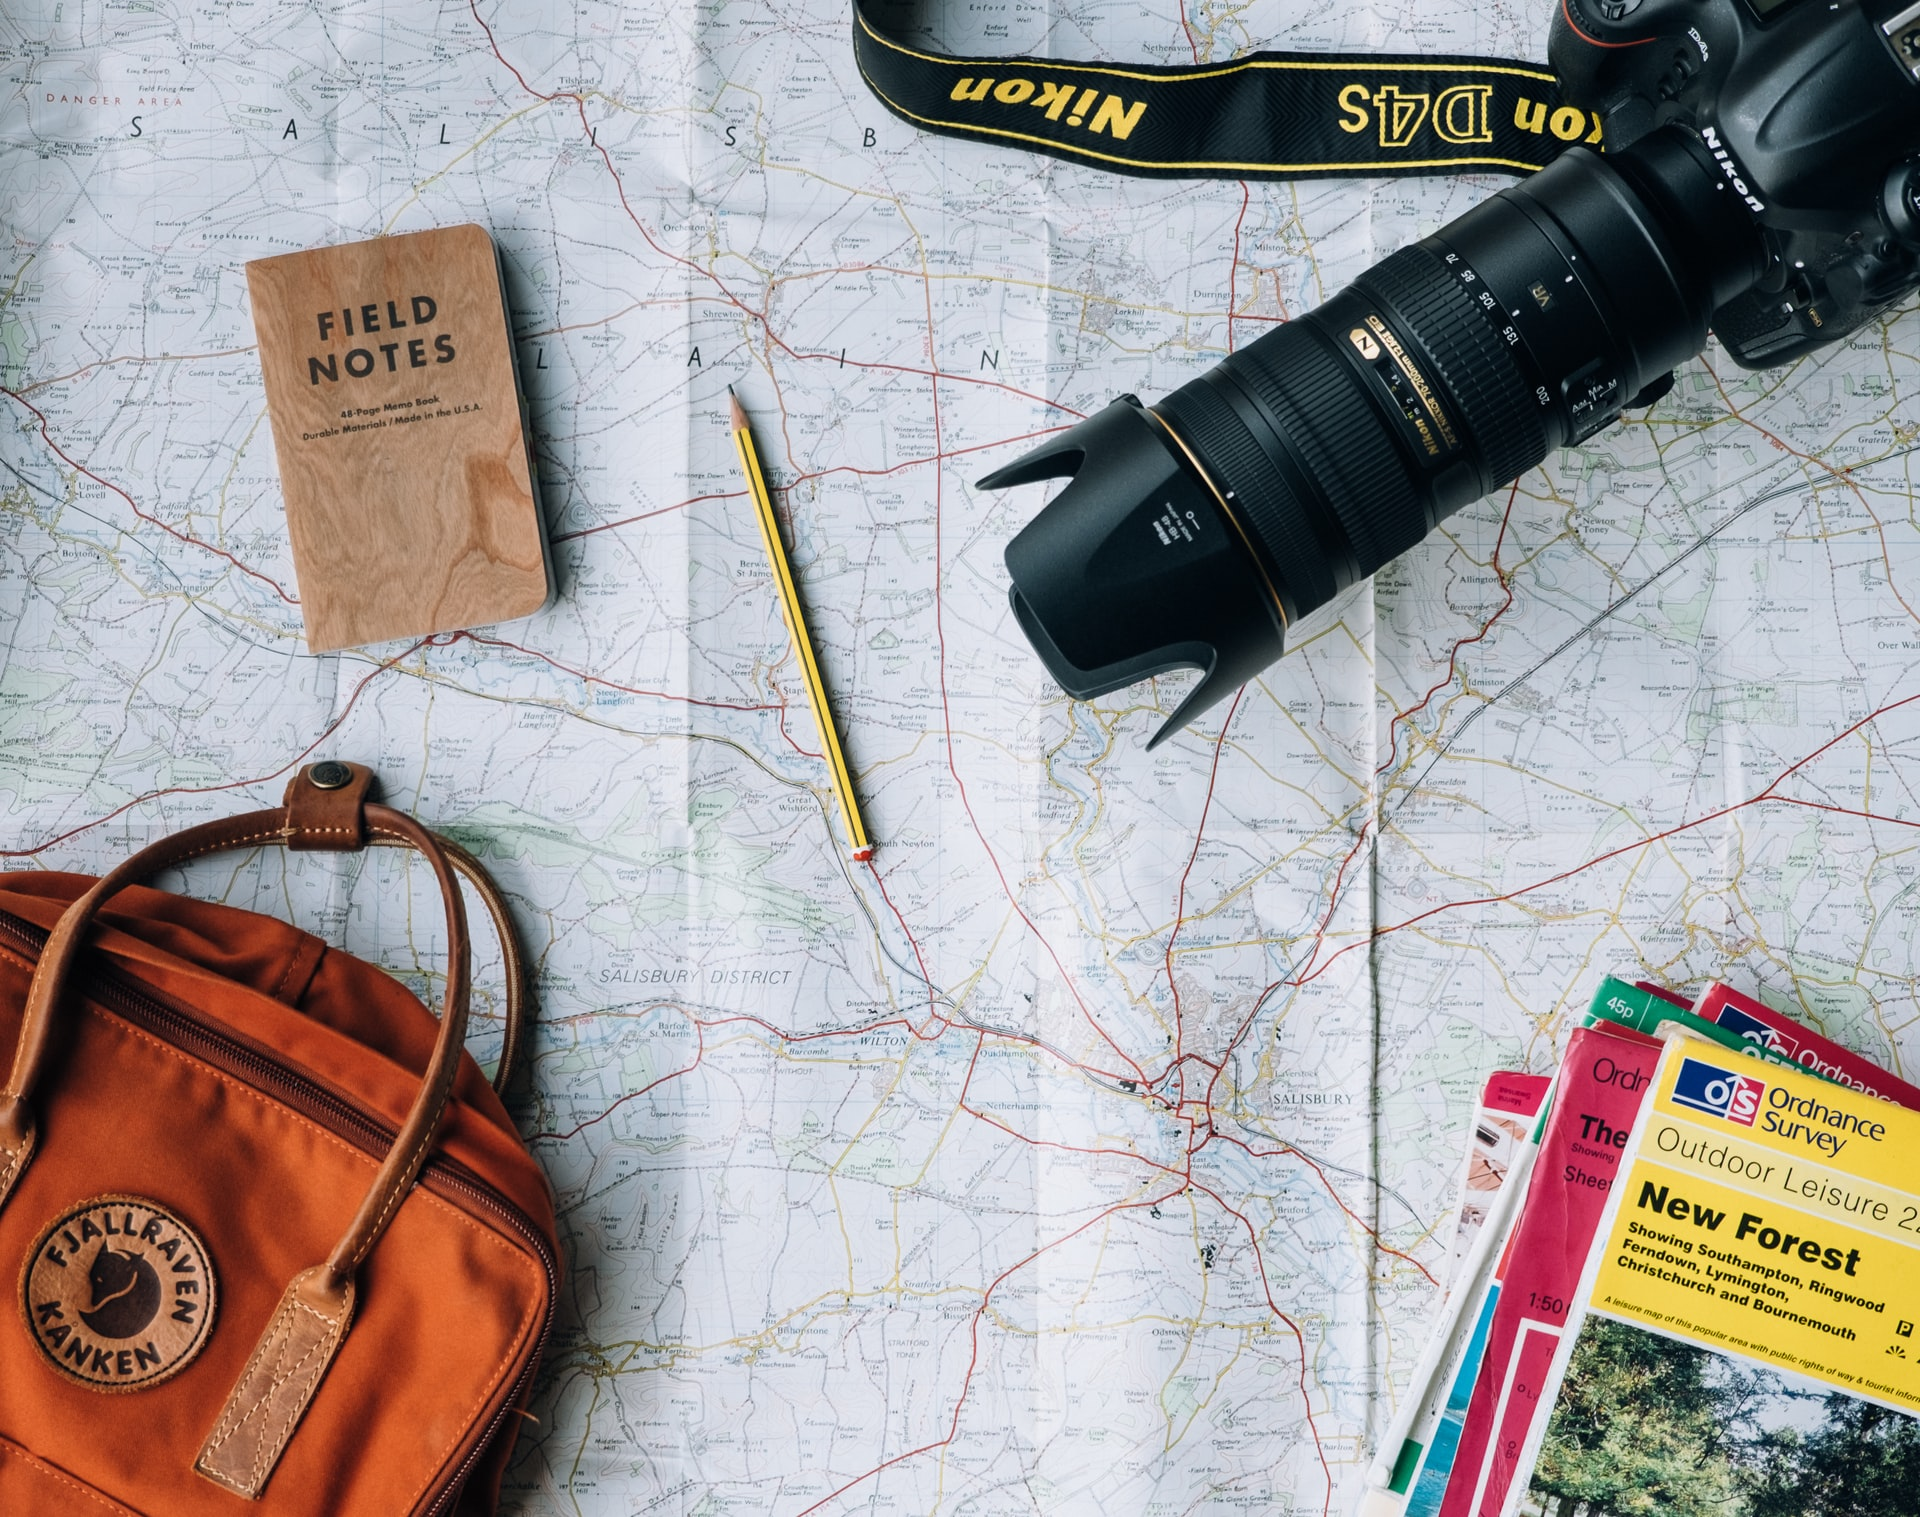 Flat lay photography of Nikon camera, book and backpack